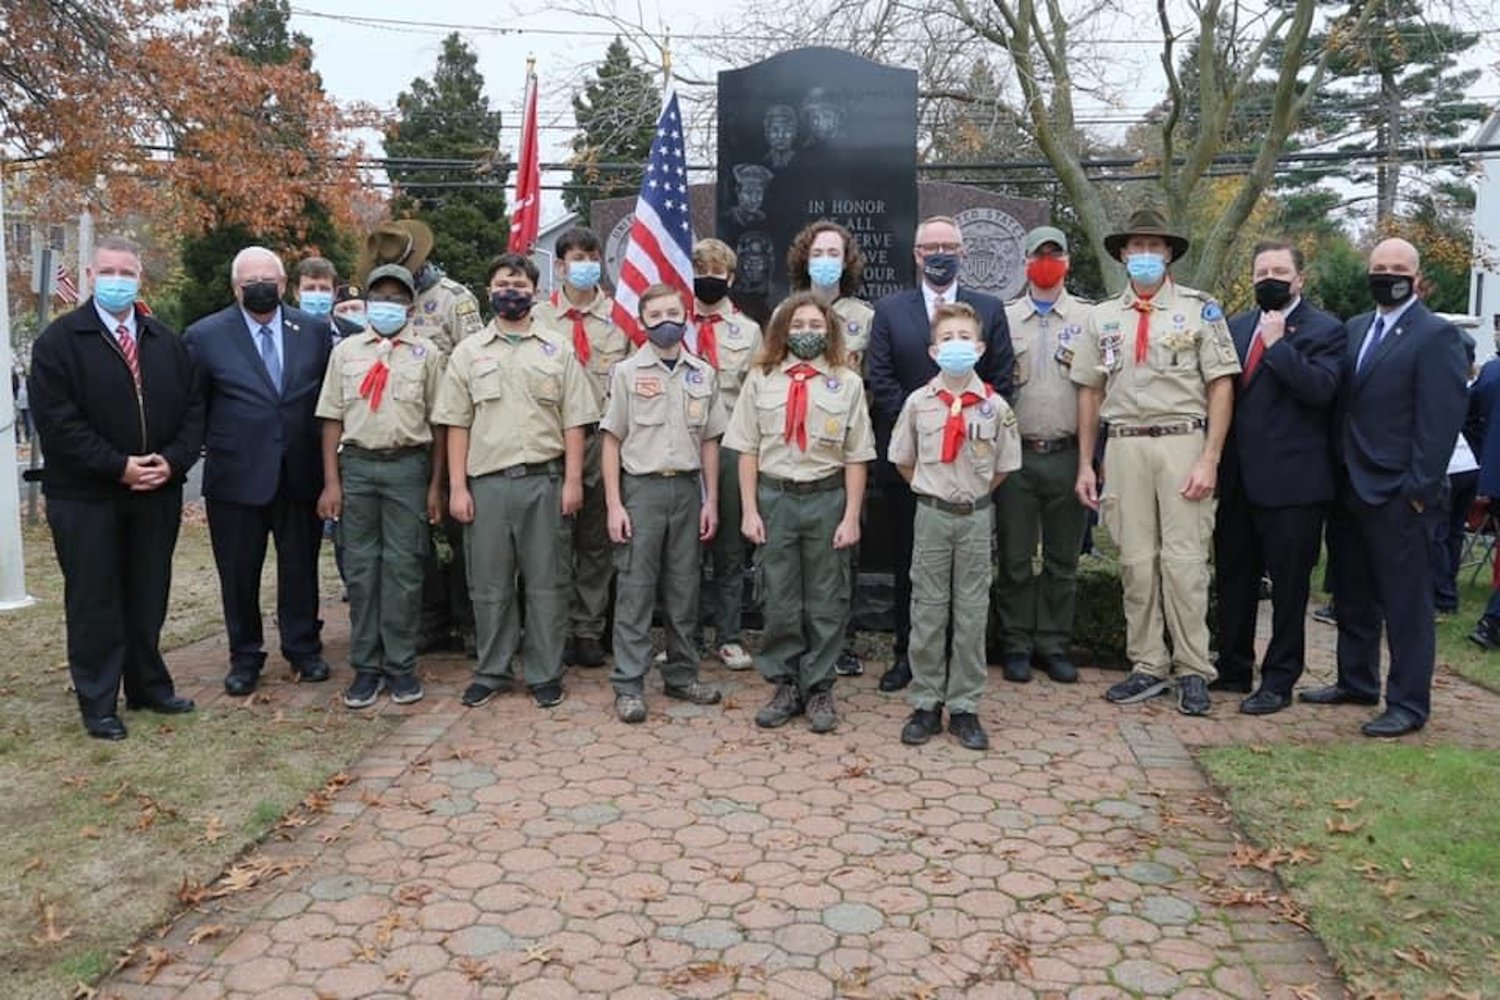 Members of Merrick's Boy Scout Troop 351 were on hand to participate in the observance.